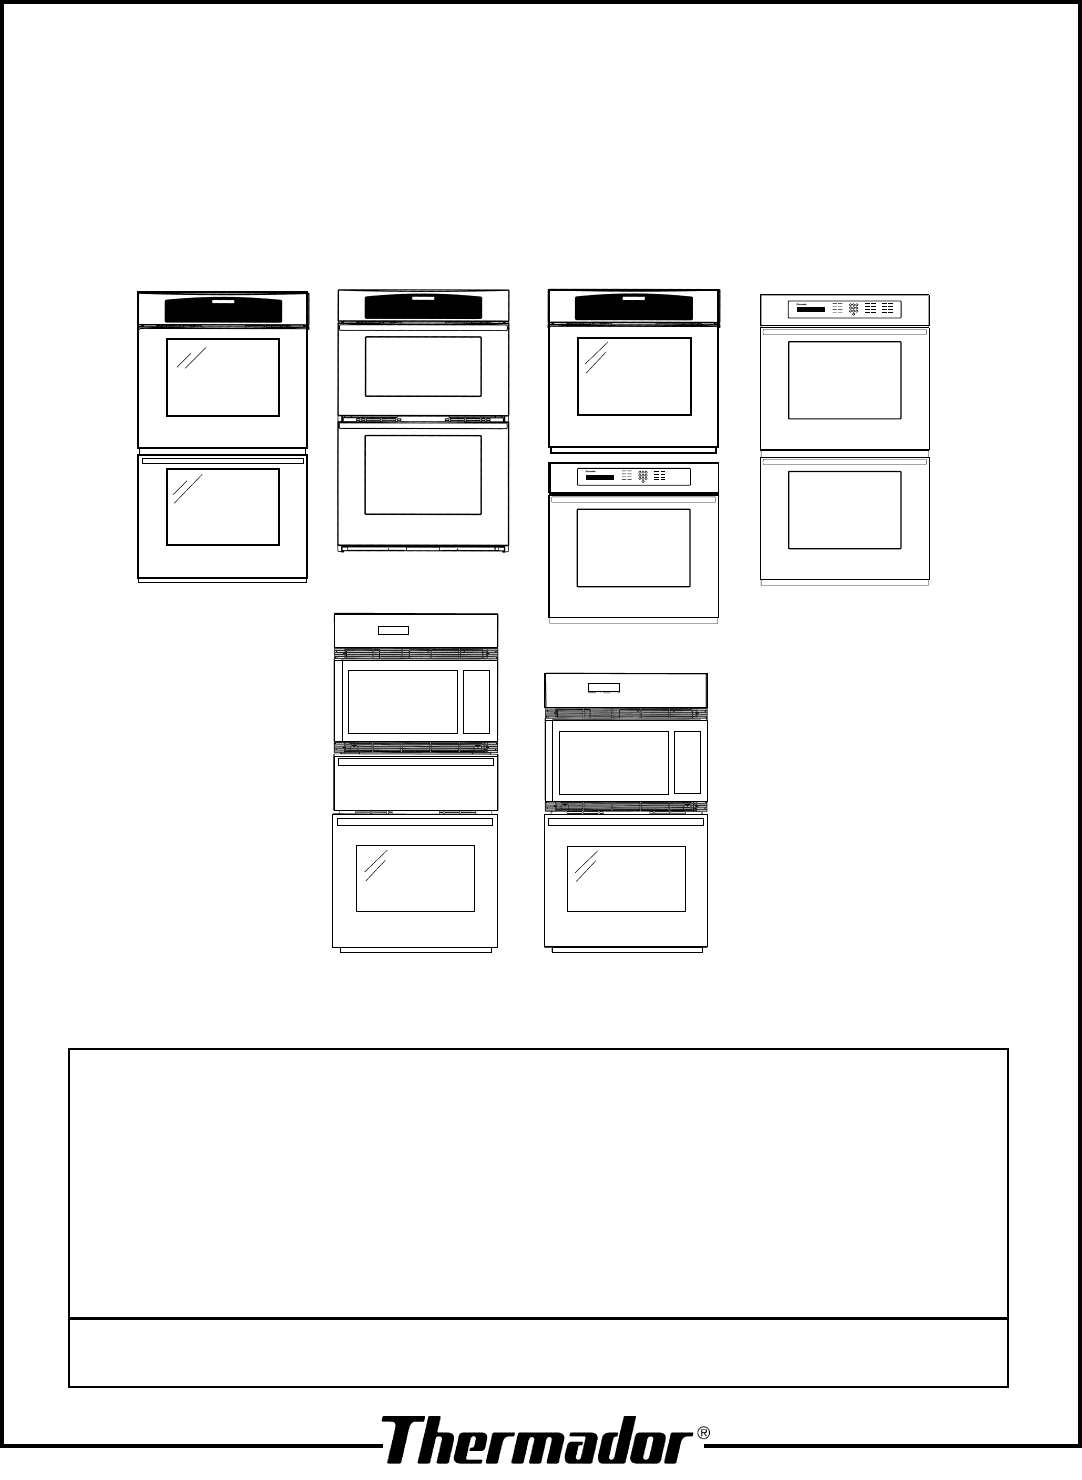 Thermador Cj302 Wiring Diagram And Schematics Oven Manuals Source C301 User Manual